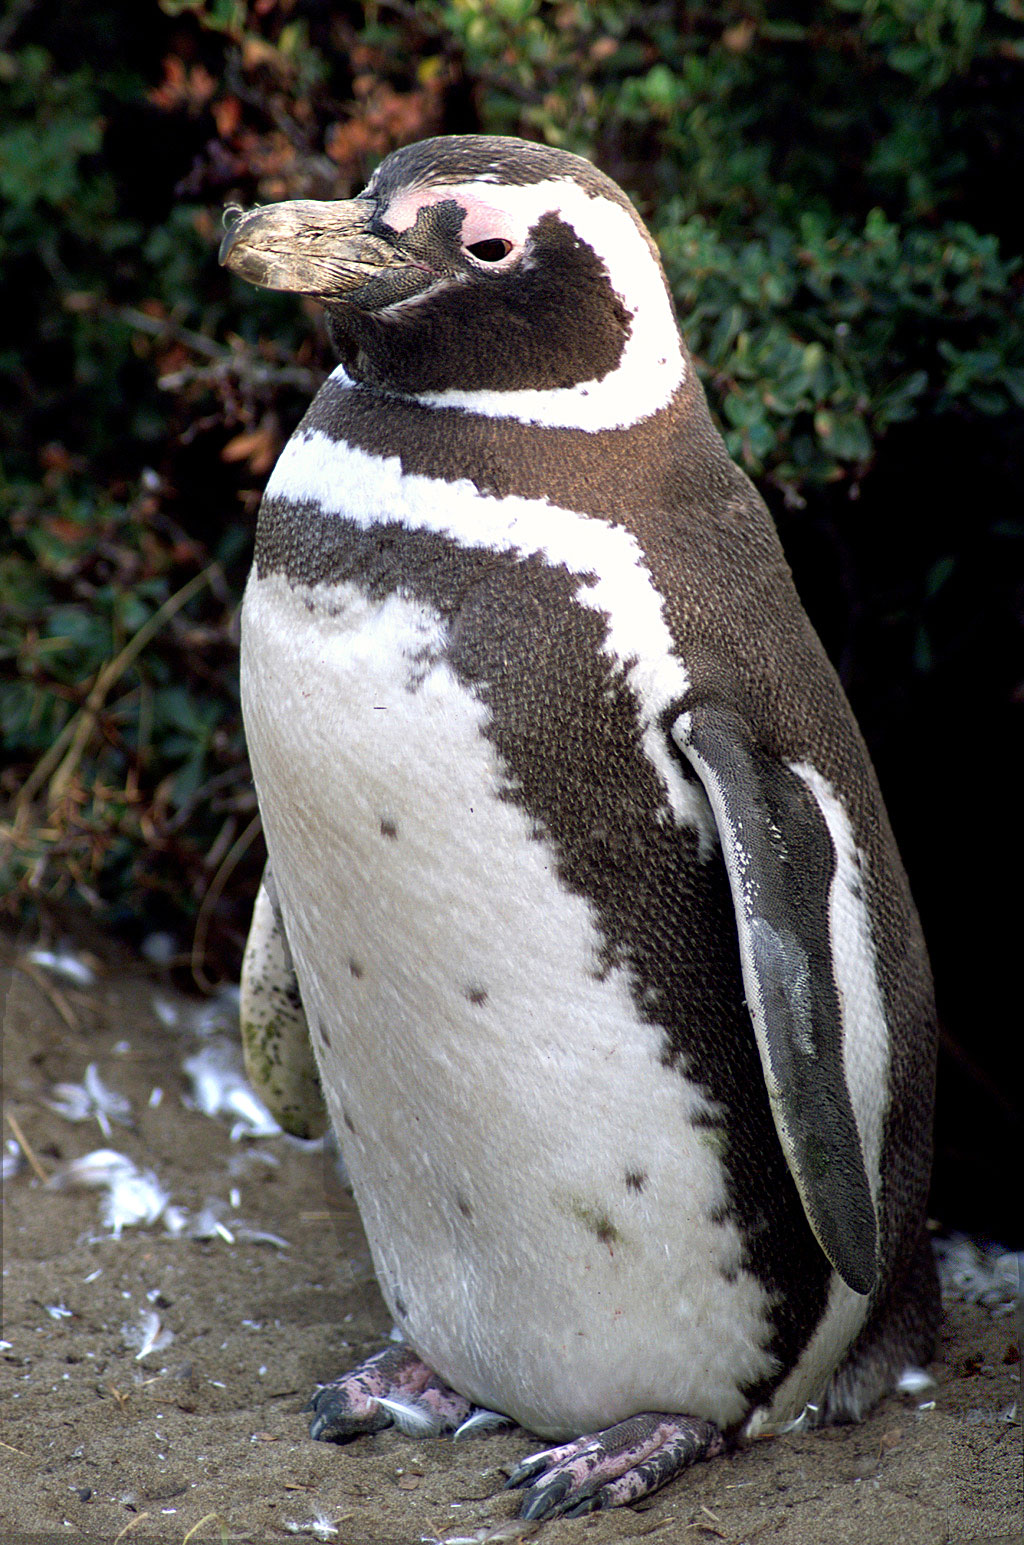 https://upload.wikimedia.org/wikipedia/commons/2/22/Magellanic-penguin02.jpg